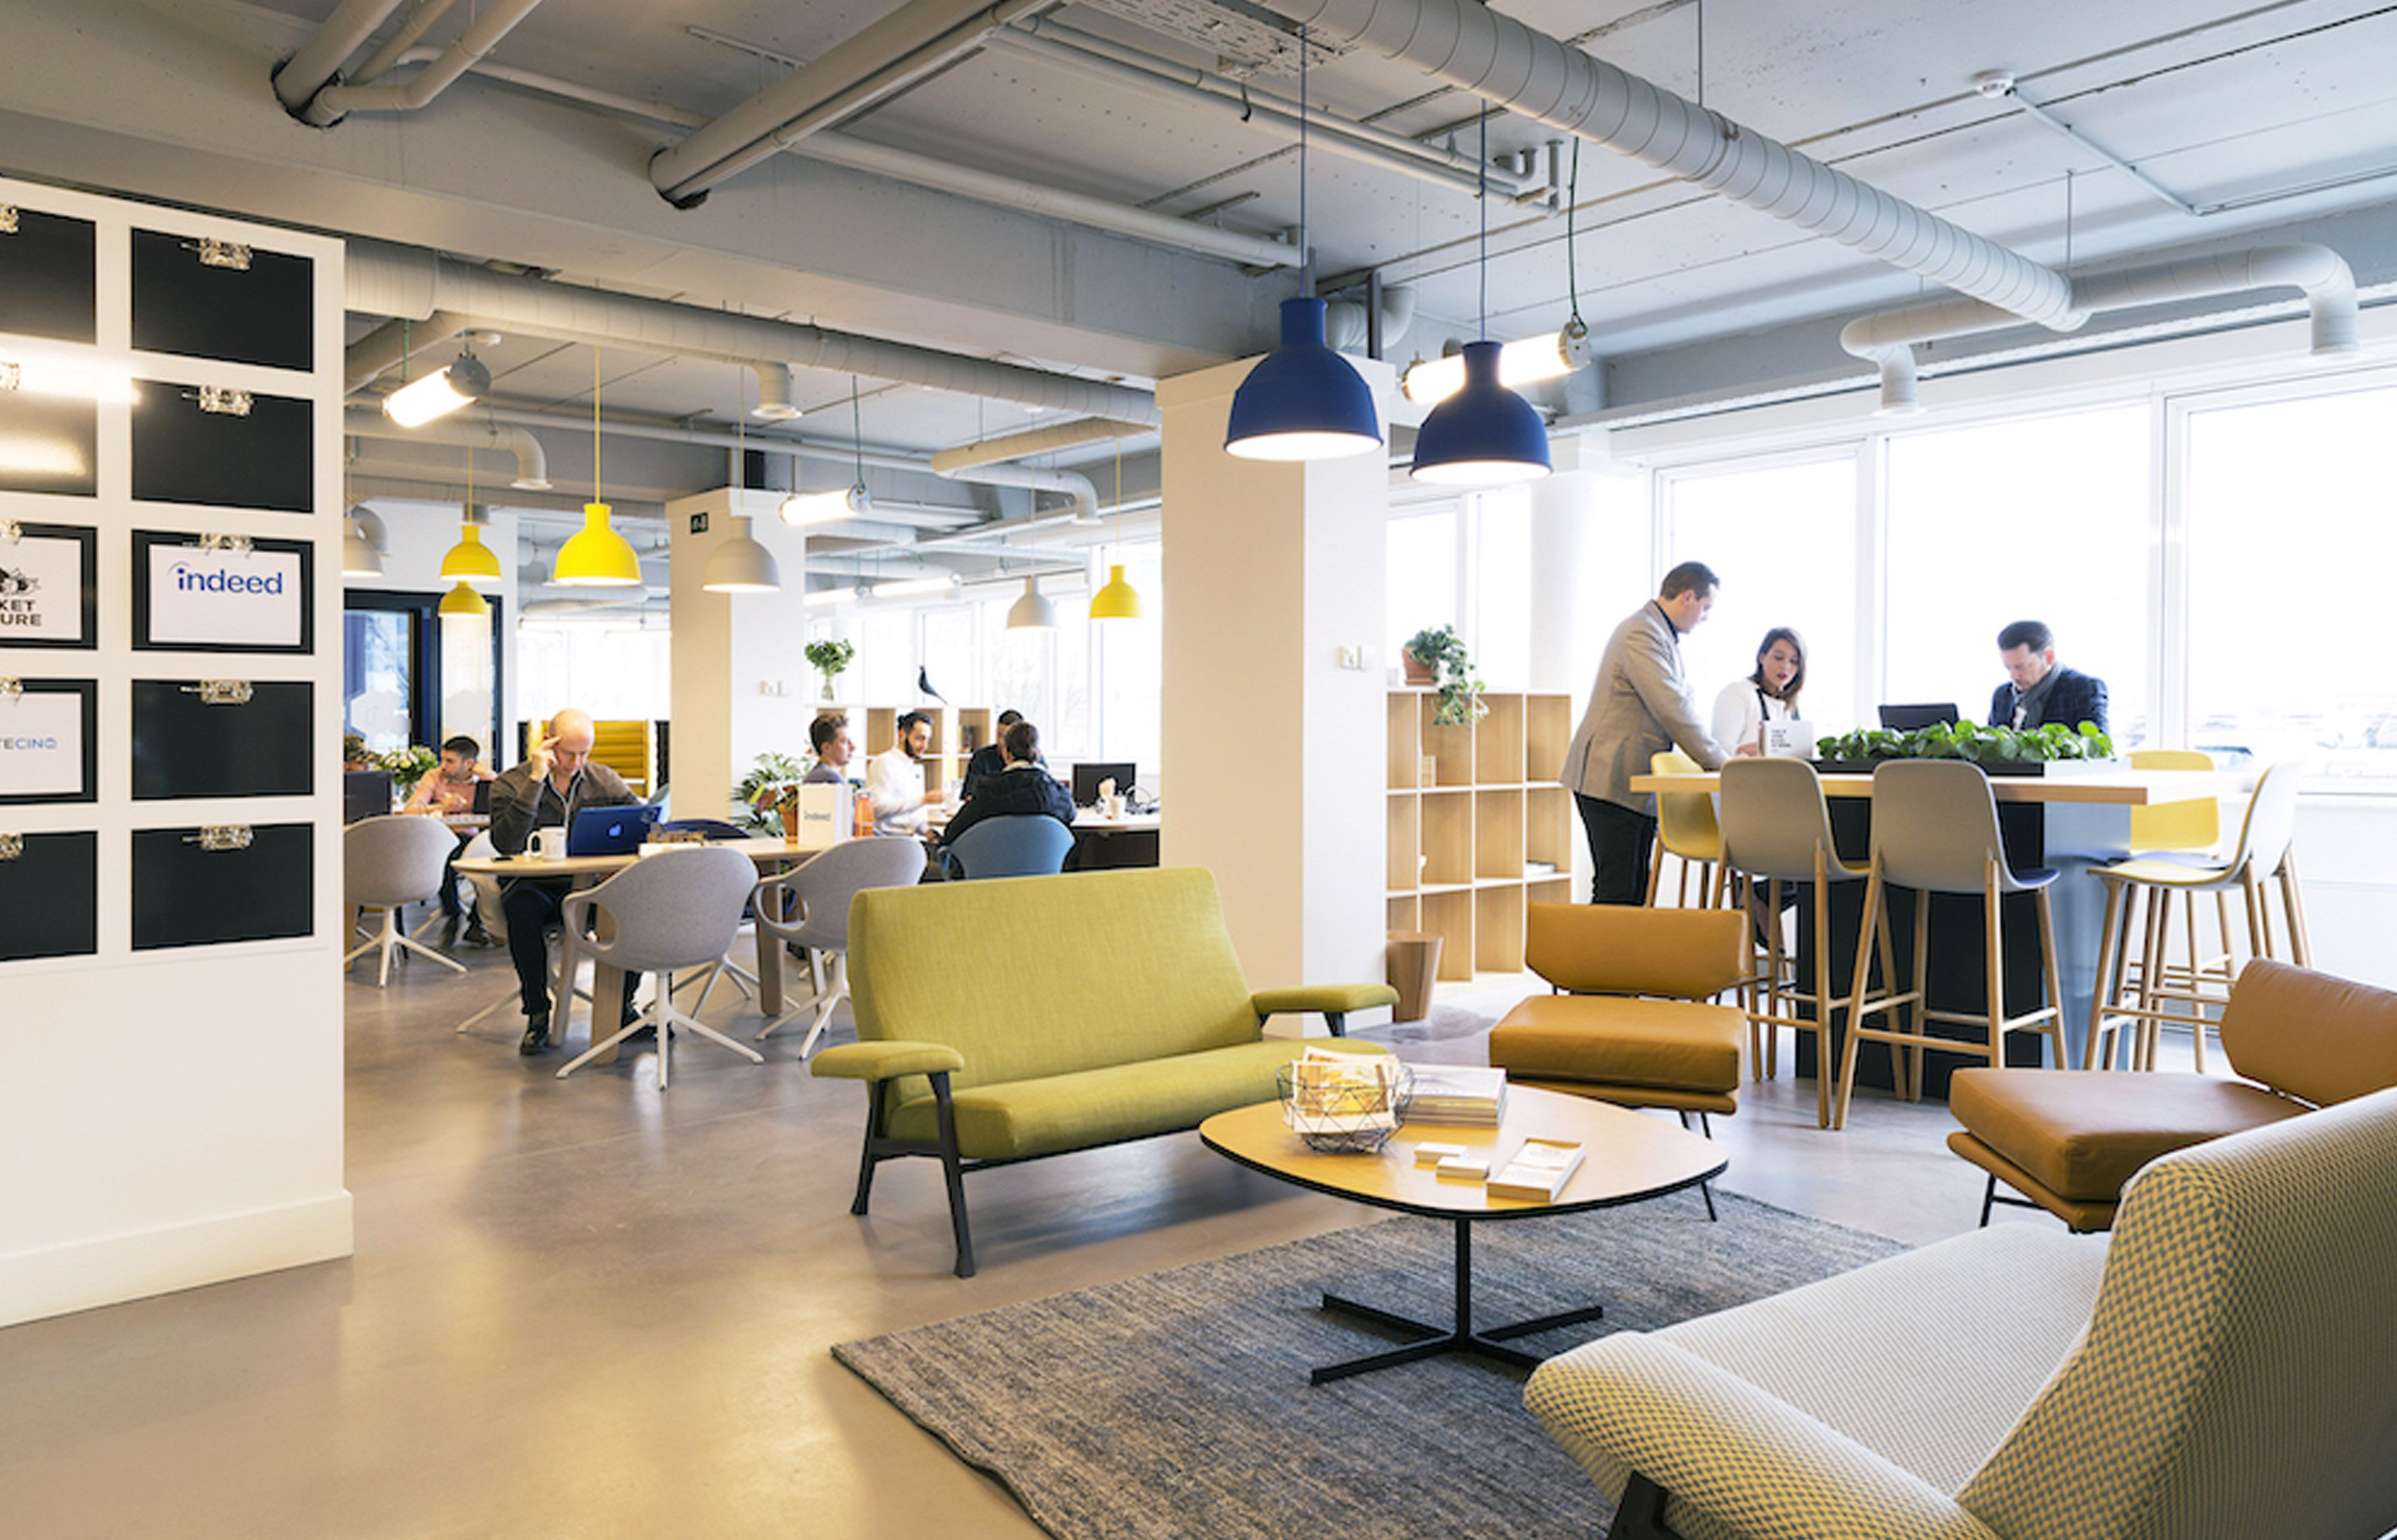 The innovative design offices, coworking spaces and